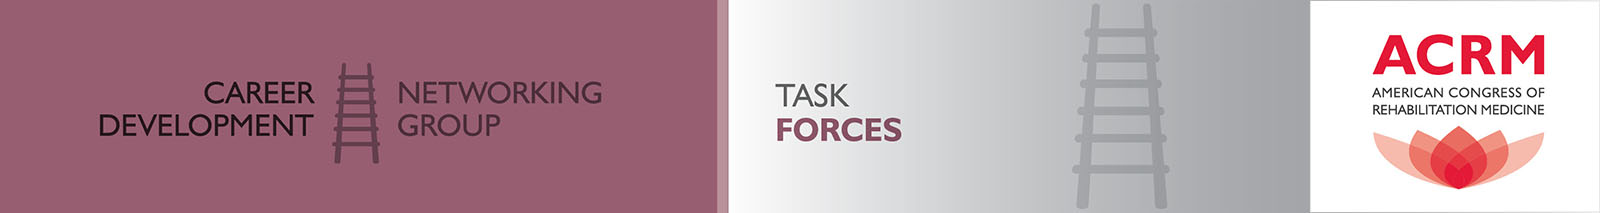 Career Development Networking Group Task Forces